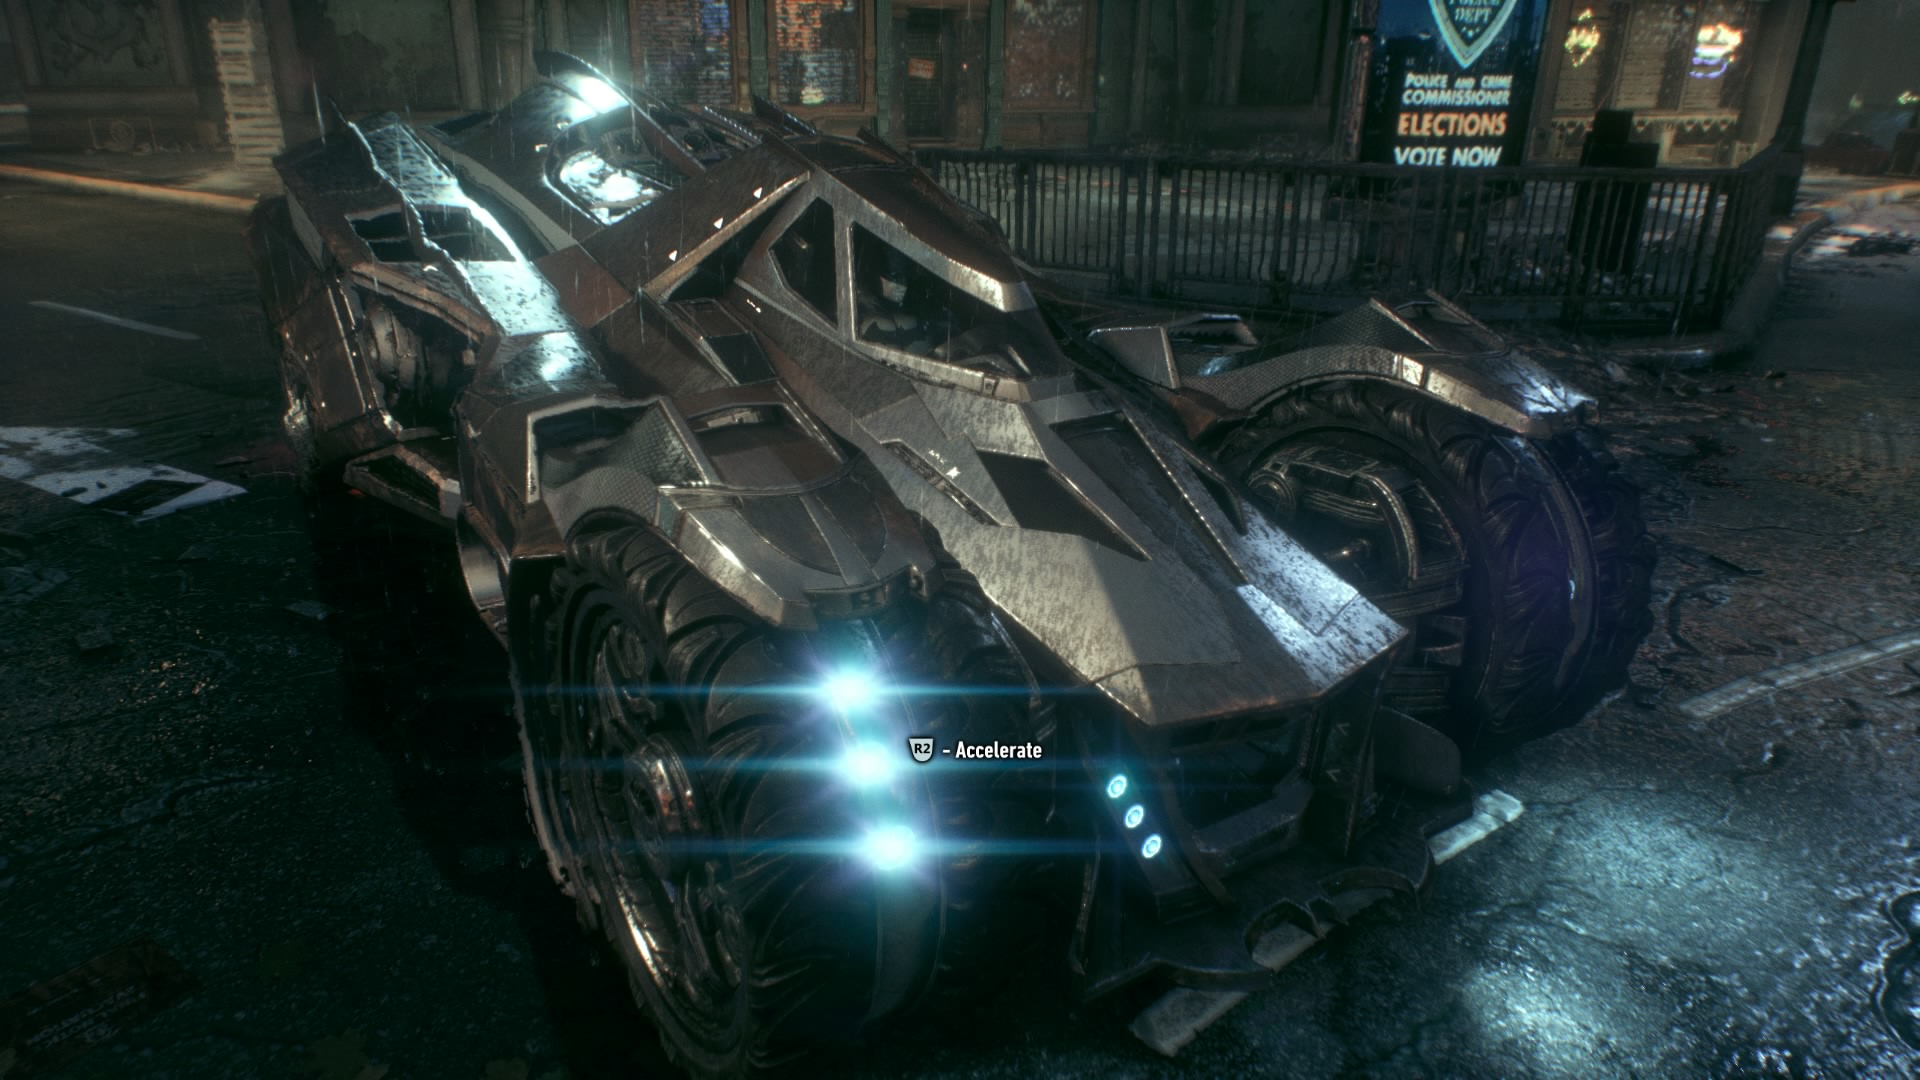 BATMANTM ARKHAM KNIGHT 20150617164641 The Batmobile